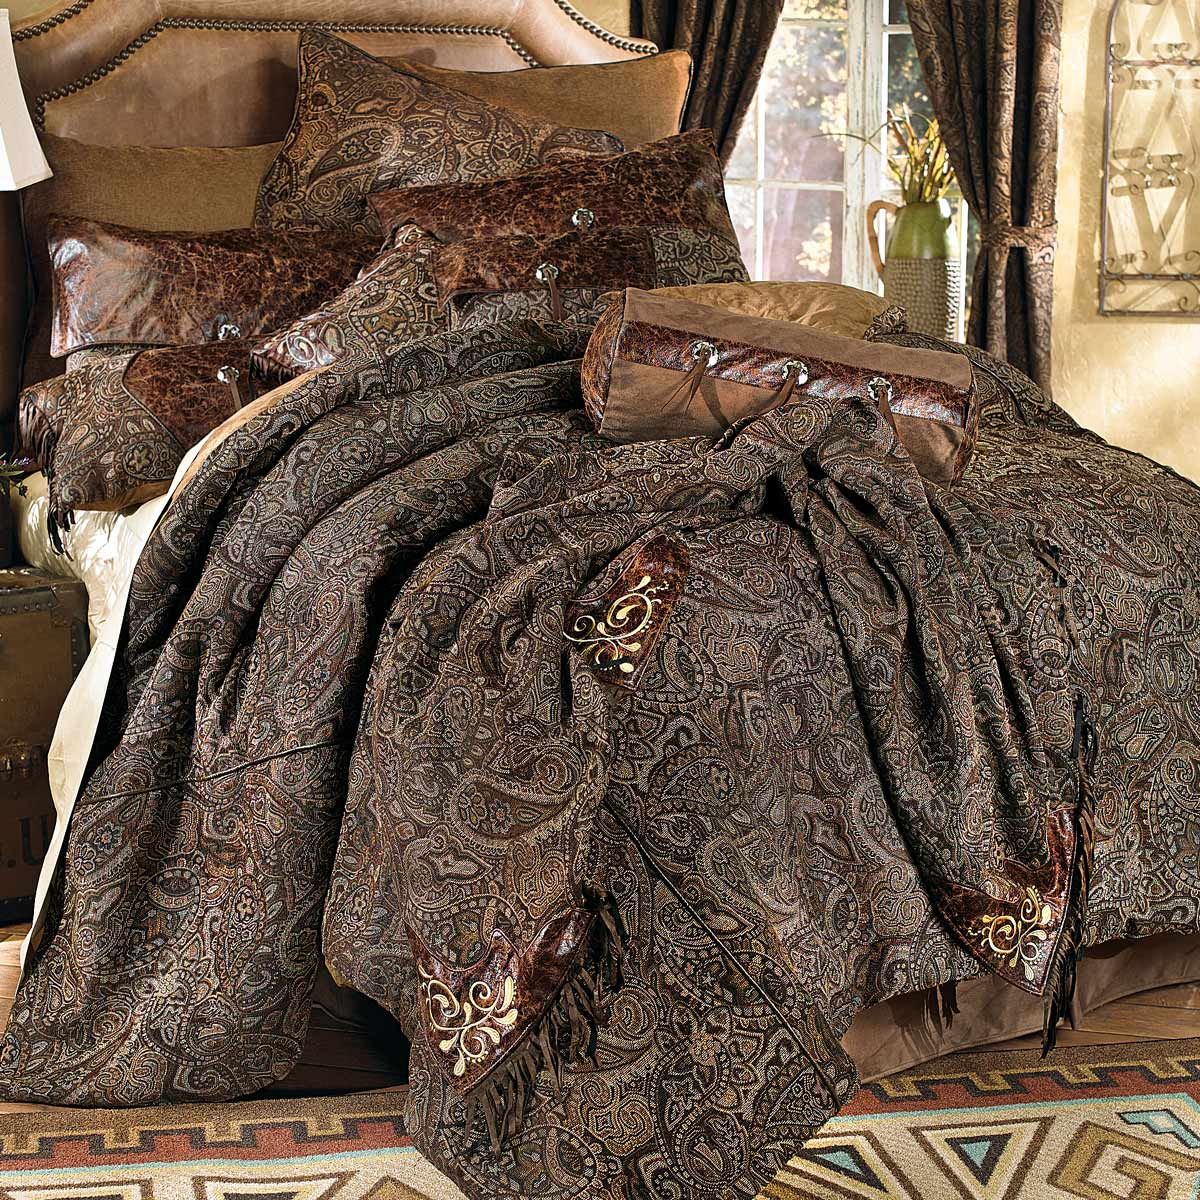 Black Forest Decor Western paisley beaumont bed set - king